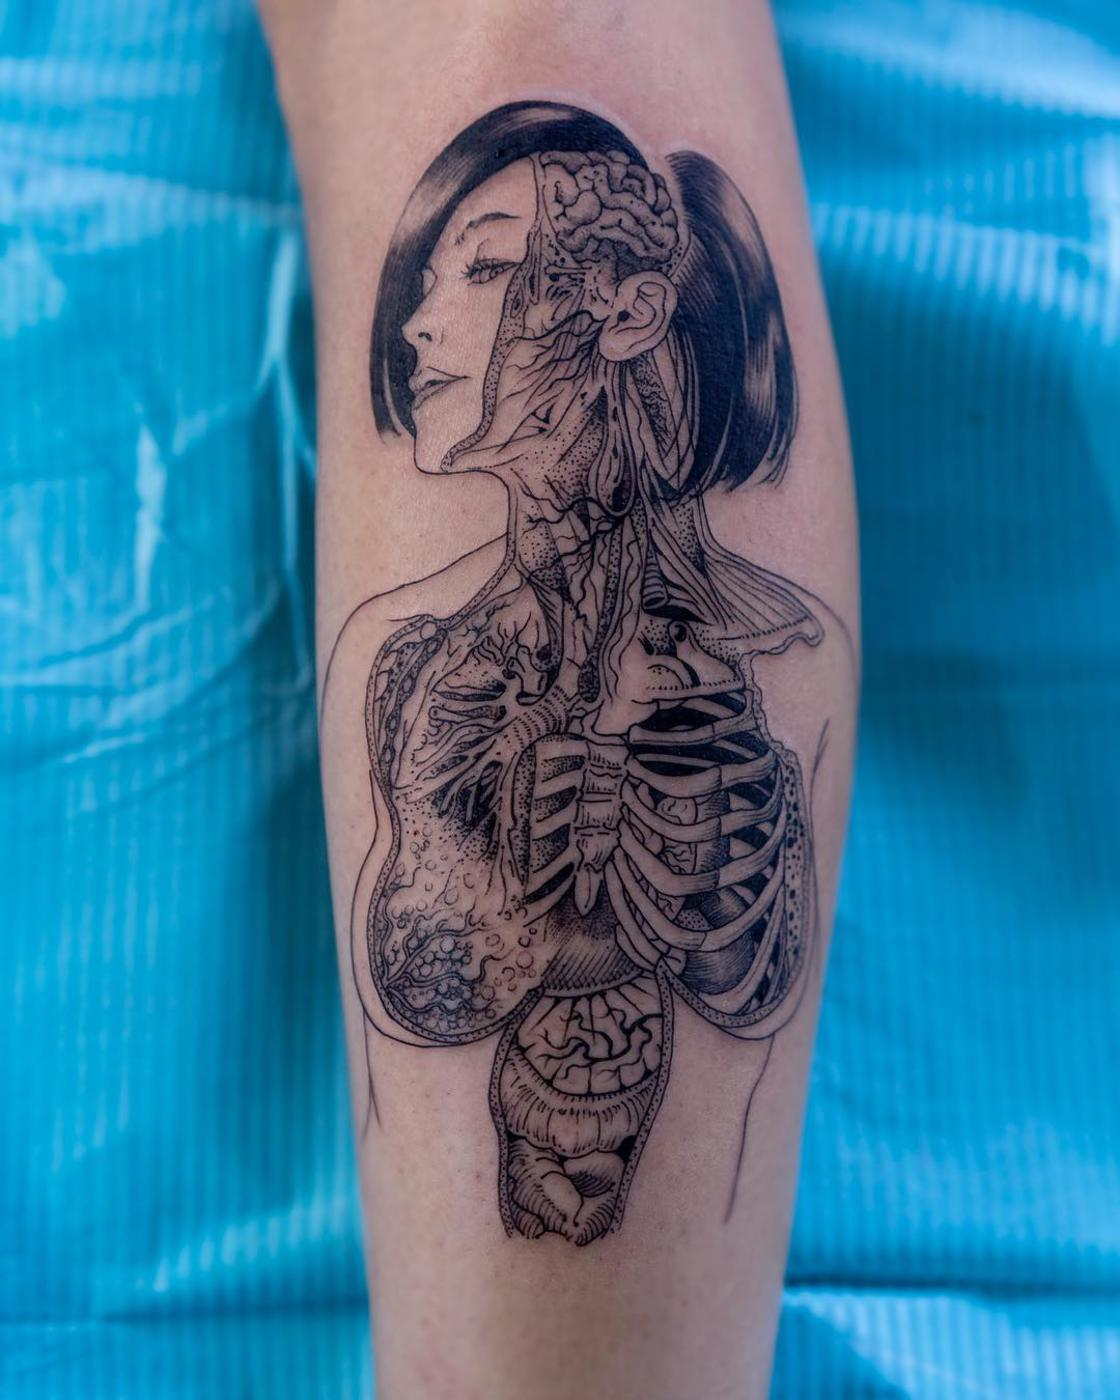 The precise, organic and fascinating tattoos of Oozy